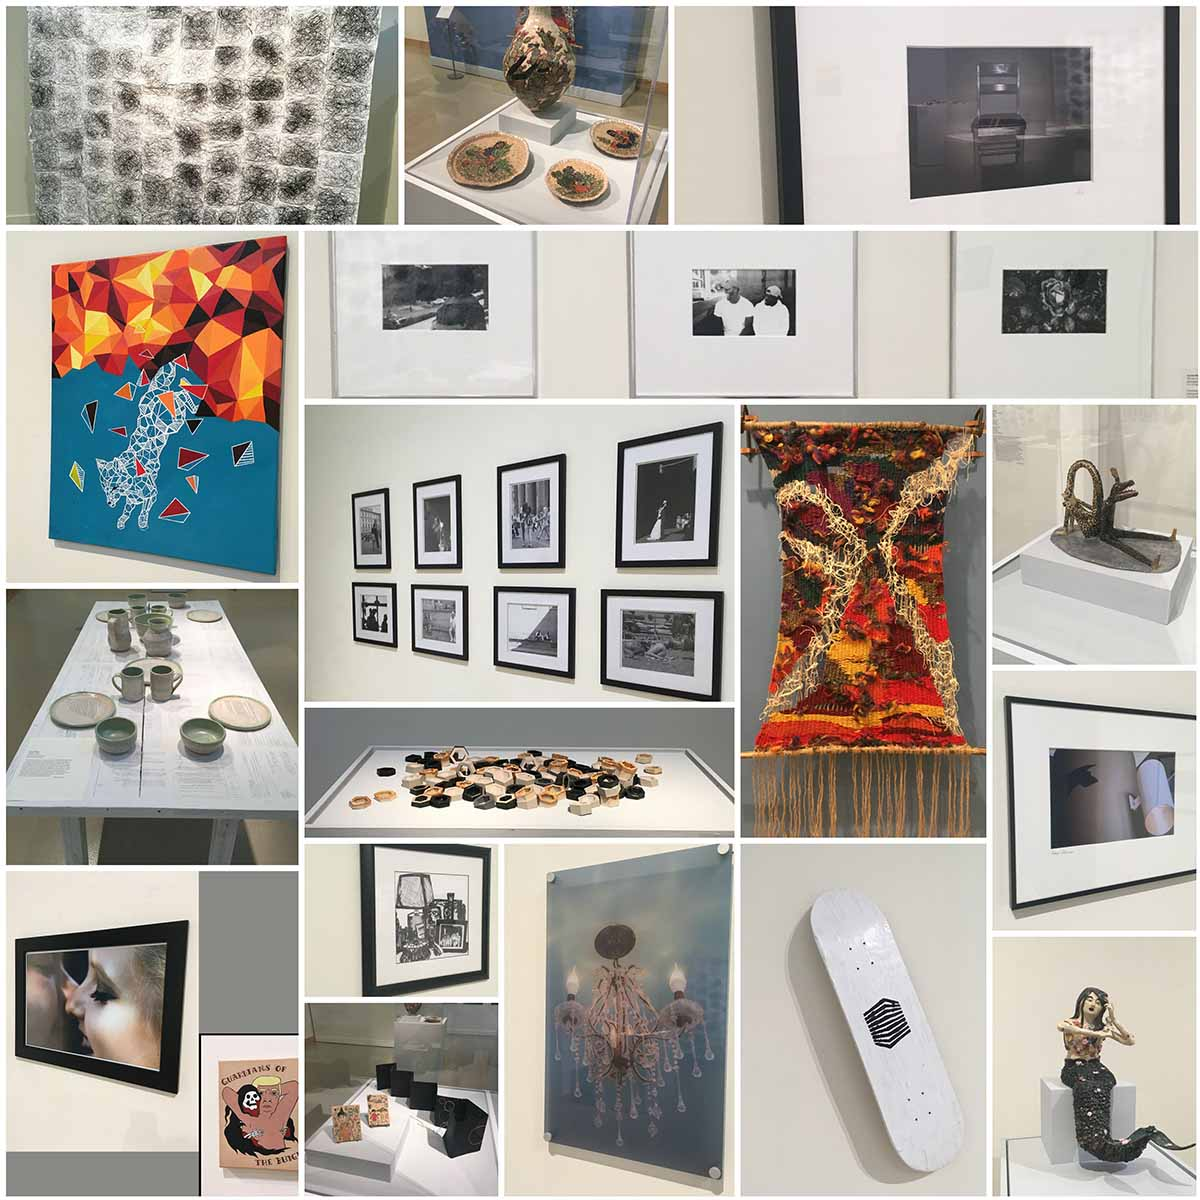 50th Annual Juried Undergraduate Exhibition